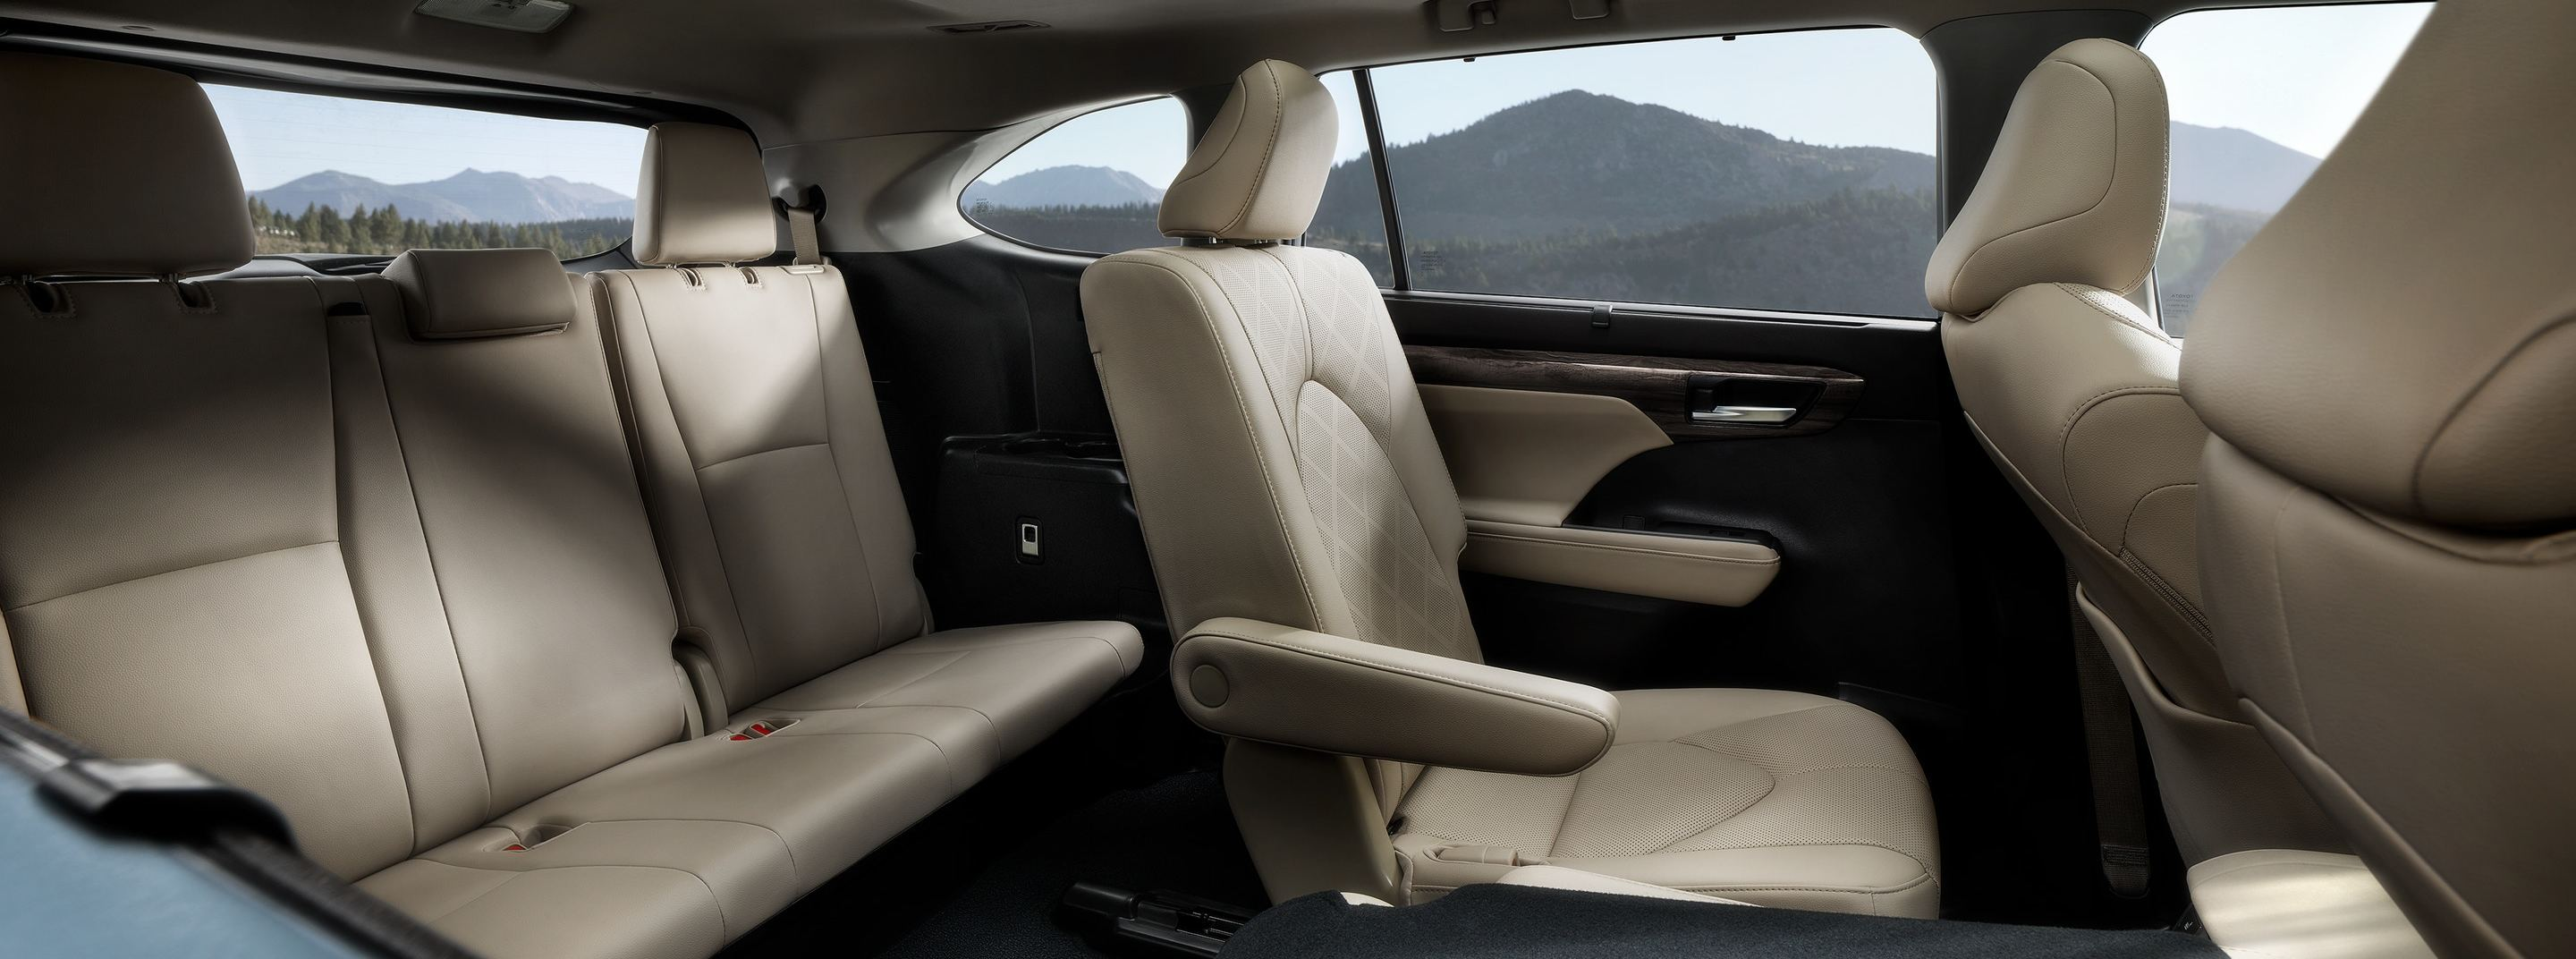 Cabin of the 2020 Highlander